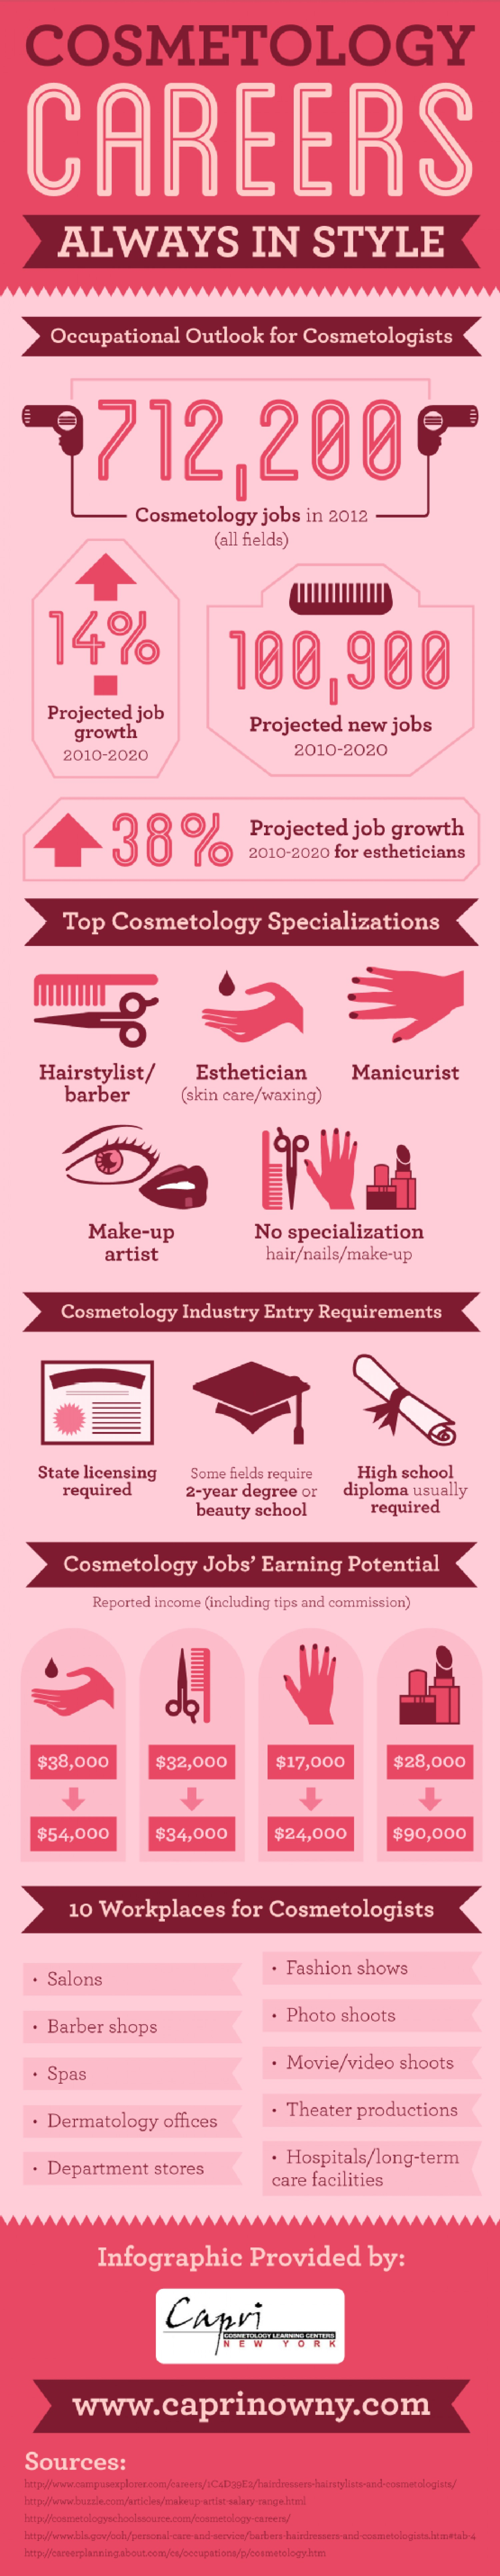 Occupational outlook for cosmetologist